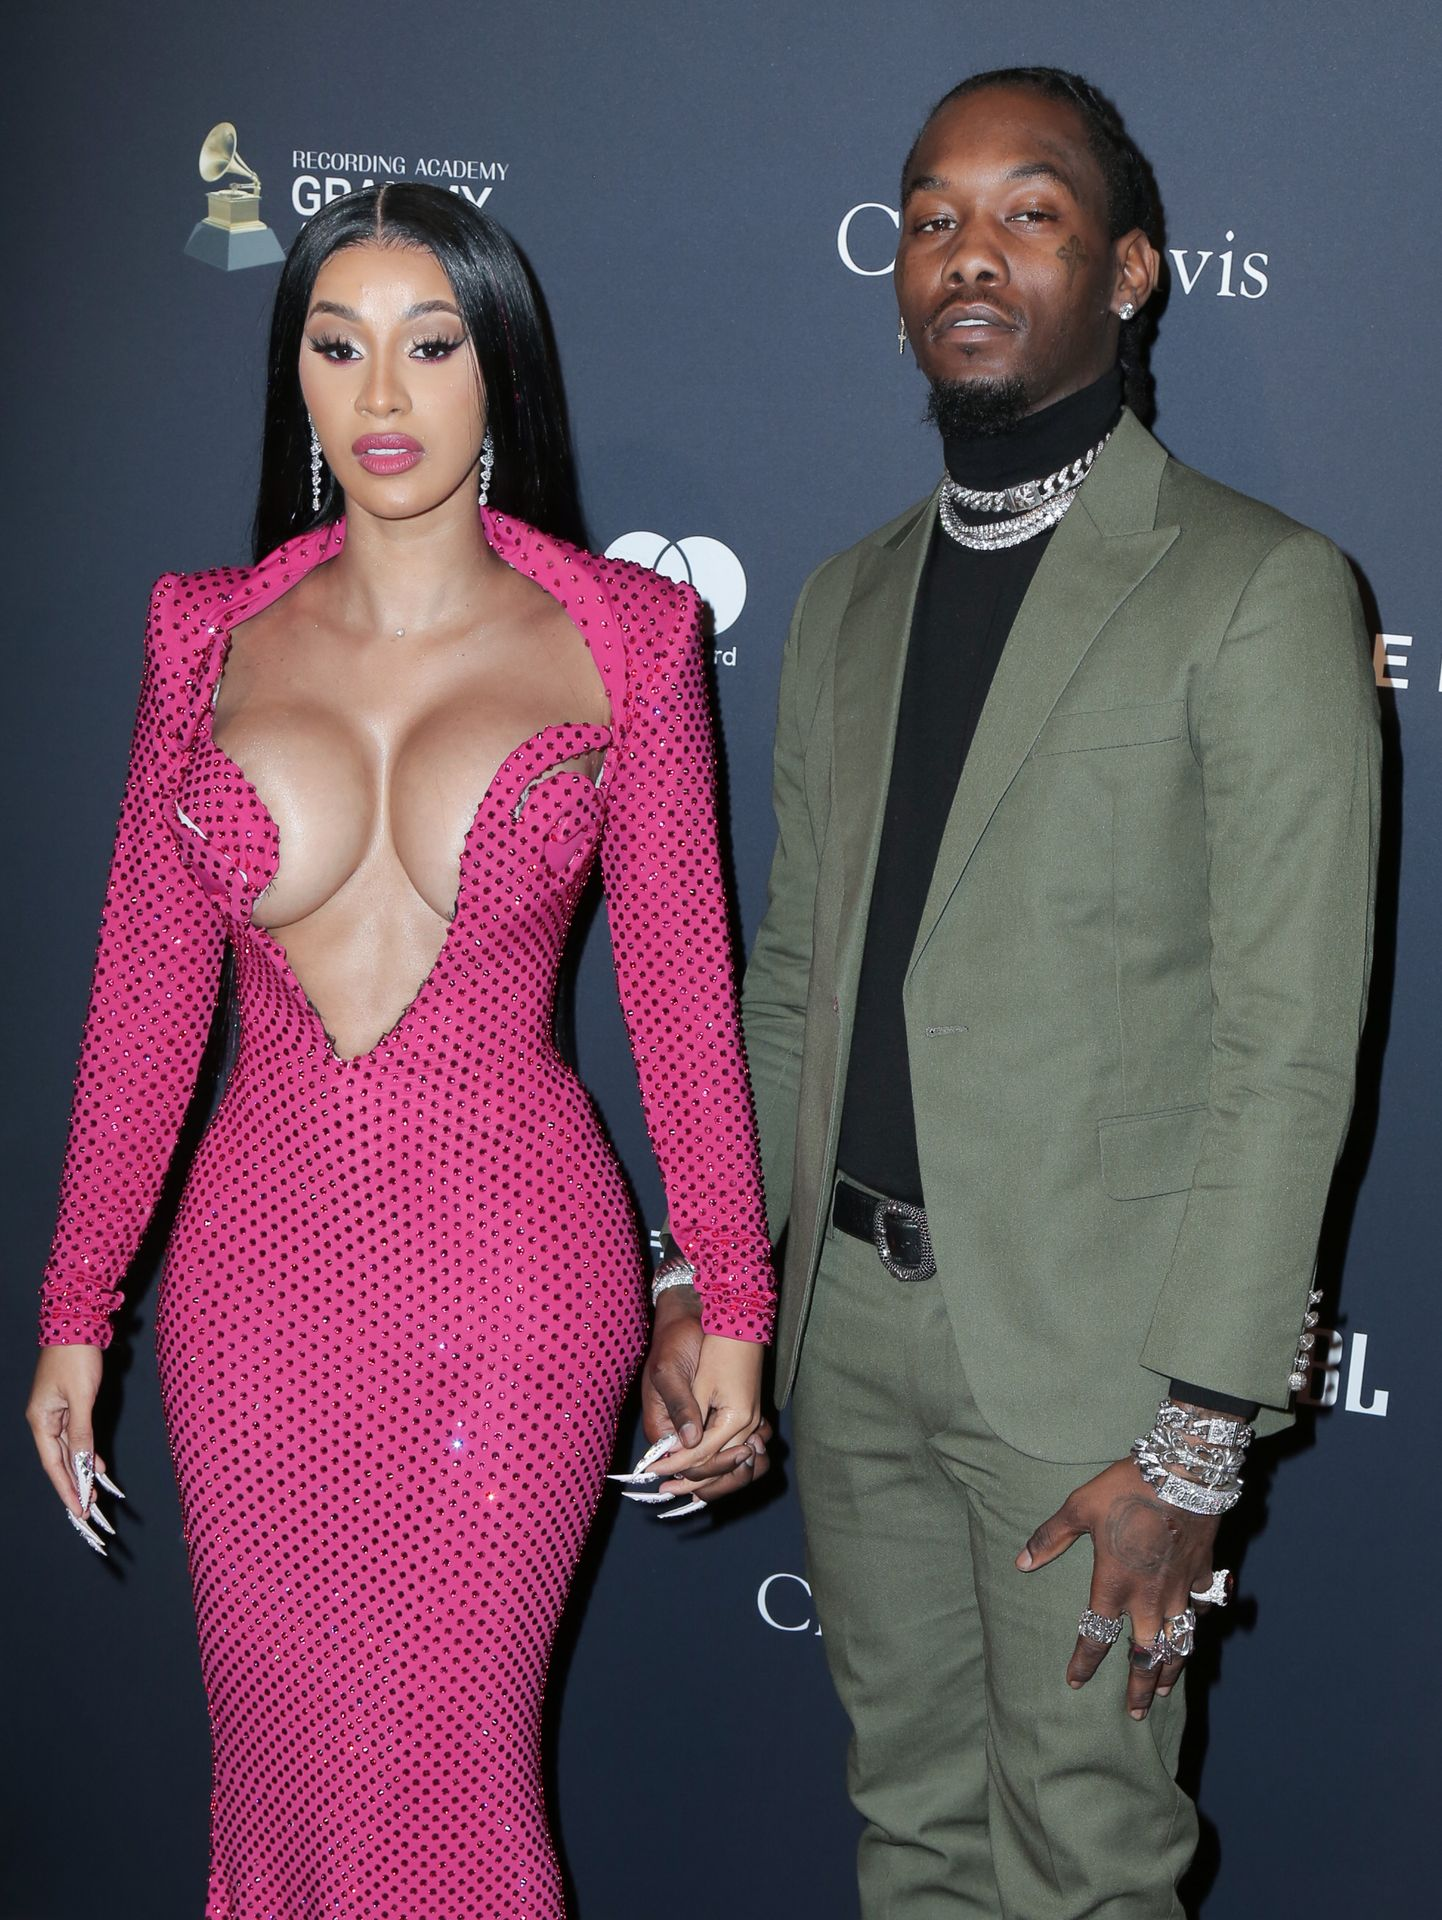 Offset Covers Cardi B's Boobs To Avoid Wardrobe Malfunction At Clive Davis Pre Grammy Party 0102